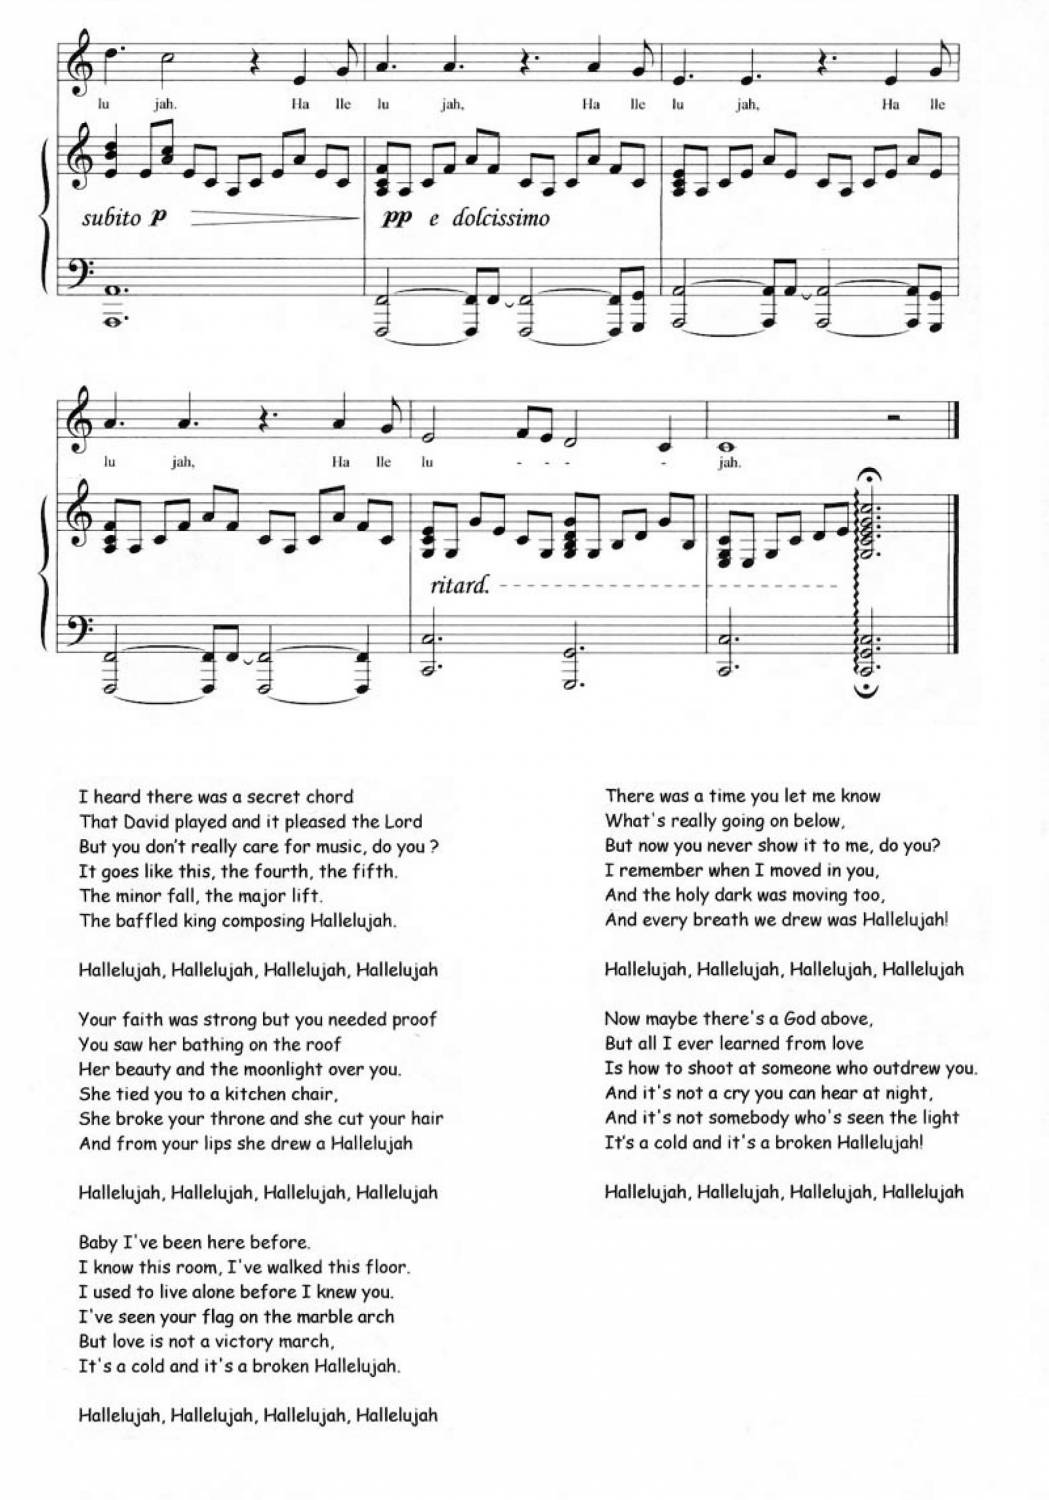 Hallelujah song shrek version lyrics